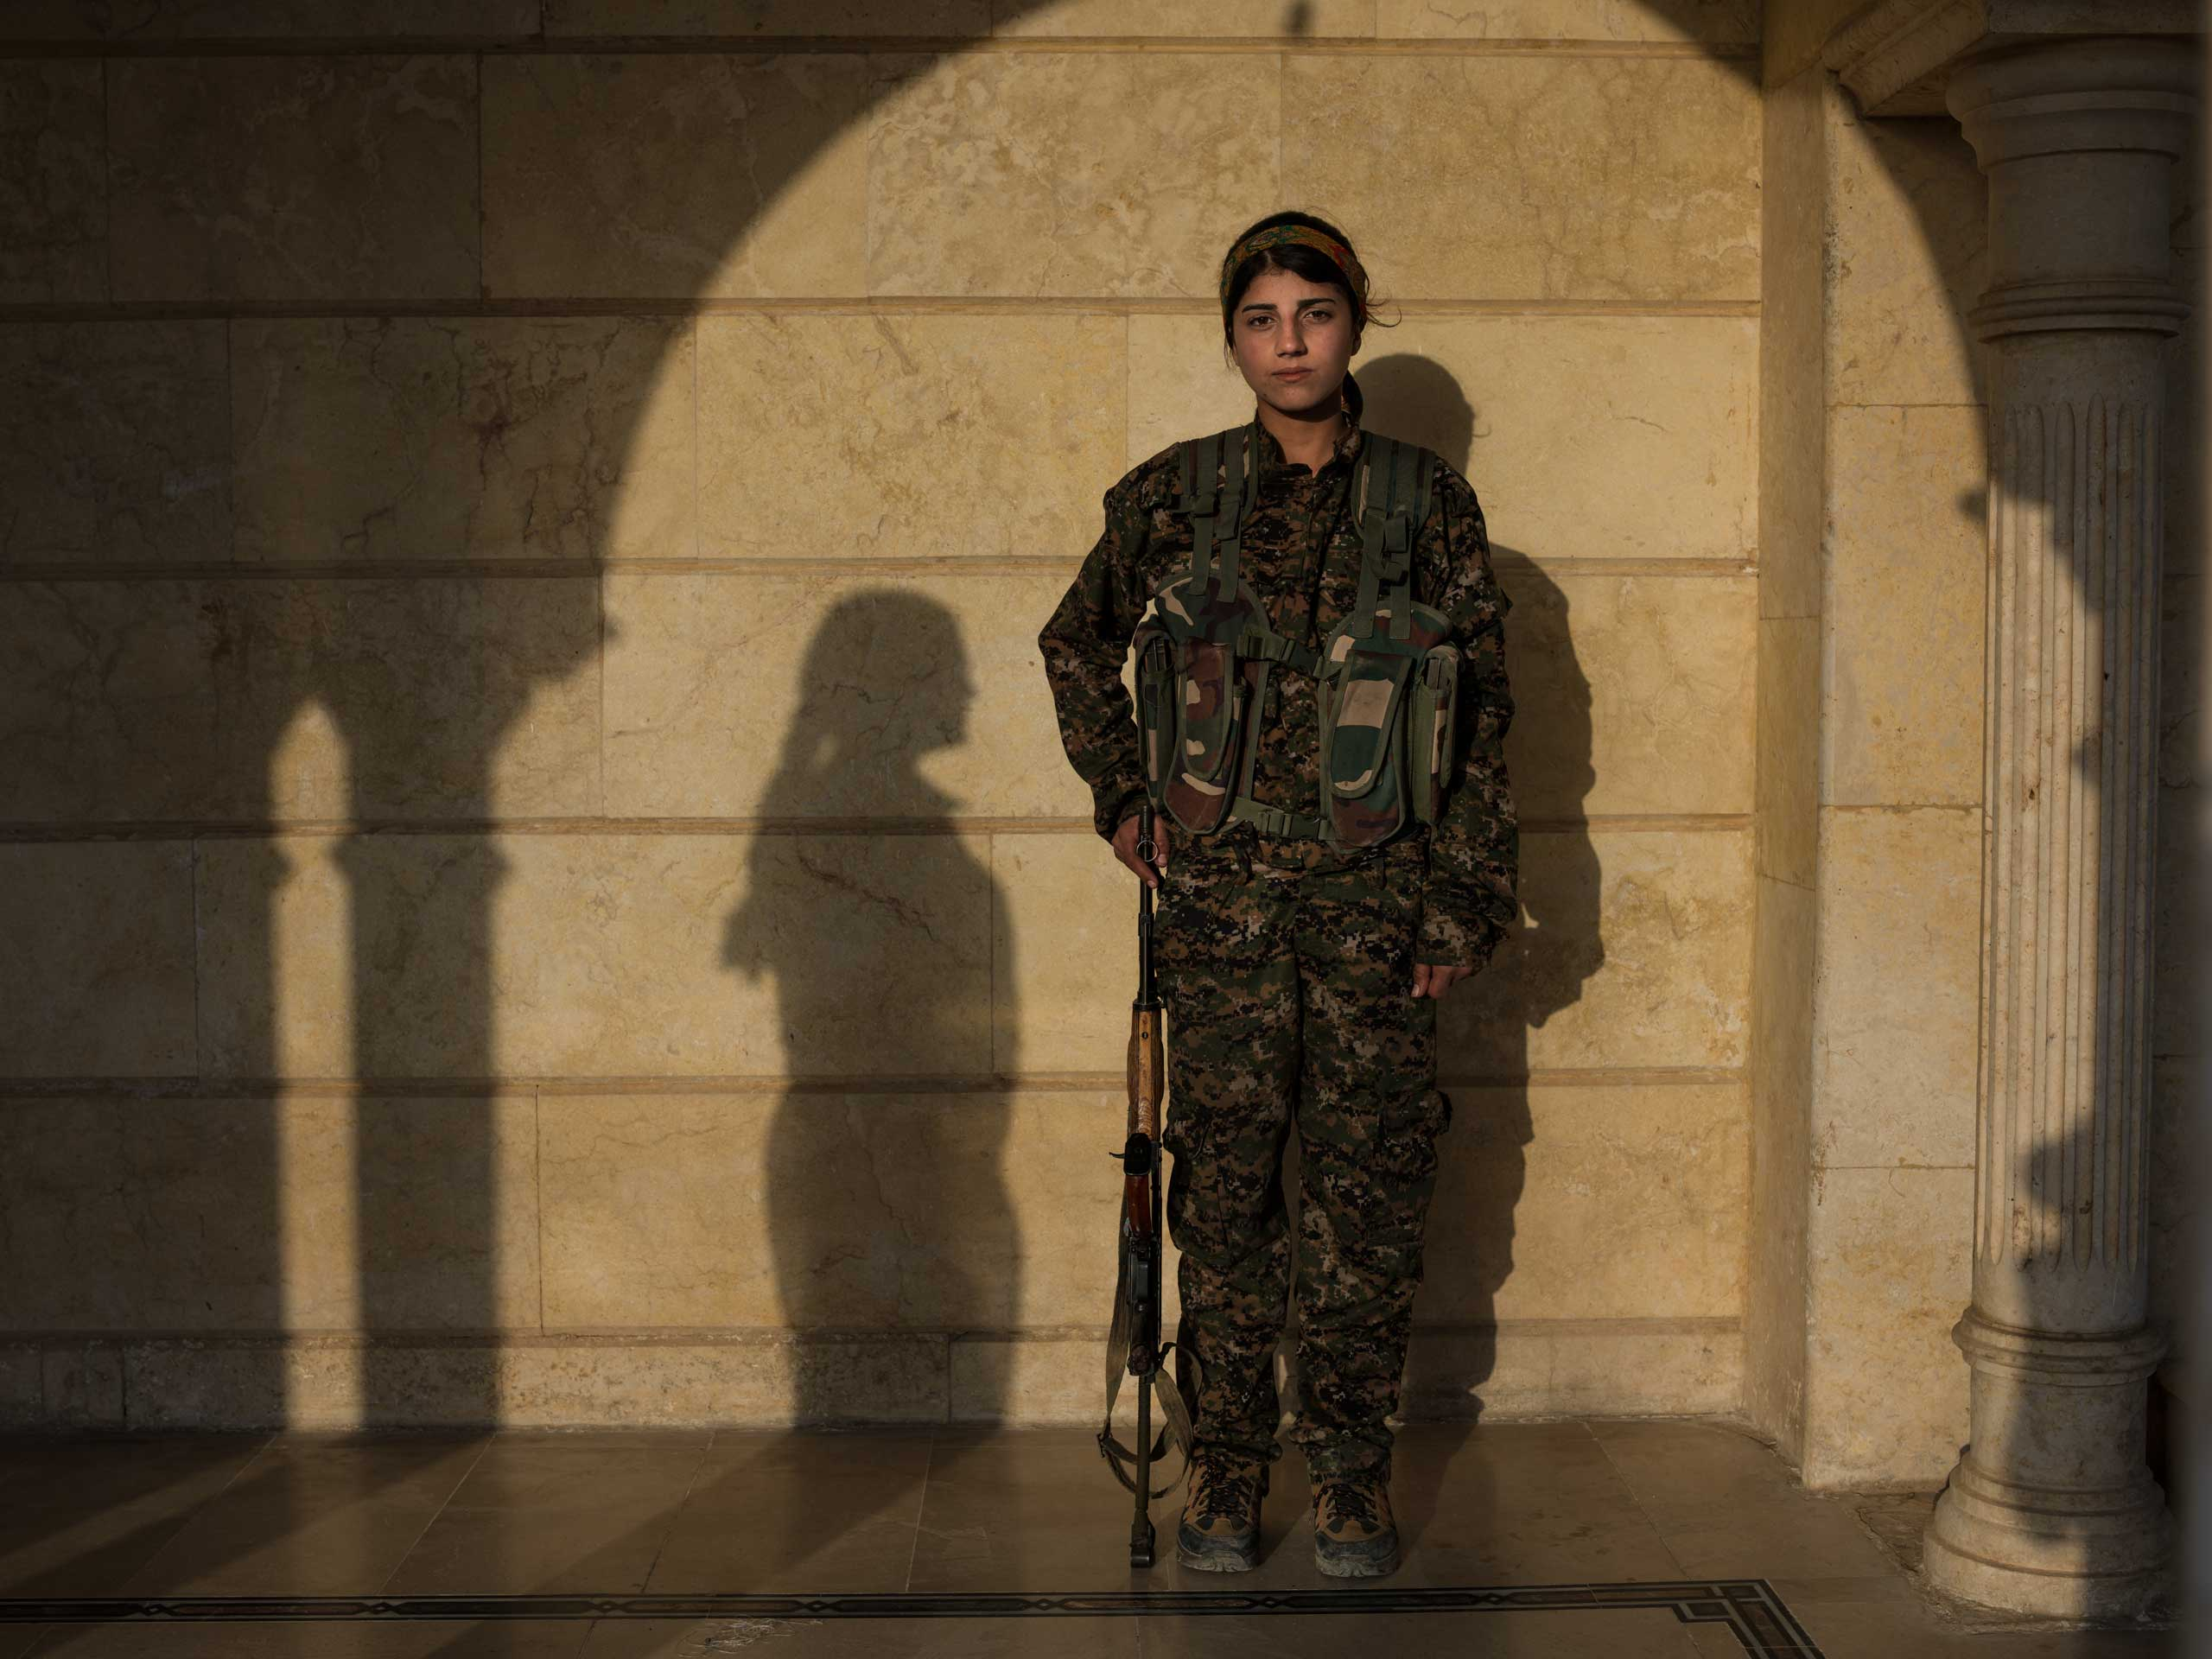 "16 year-old YPJ fighter Barkhodan Kochar from Darbasi, Syria:                                    ""The war influenced me a lot. Before joining YPJ, whenever I asked my family about politics, they'd say 'that's not your business, you're just a girl'. But when I saw how the women of YPJ gave their lives for what they believed in, I knew that I wanted to be one of them."""